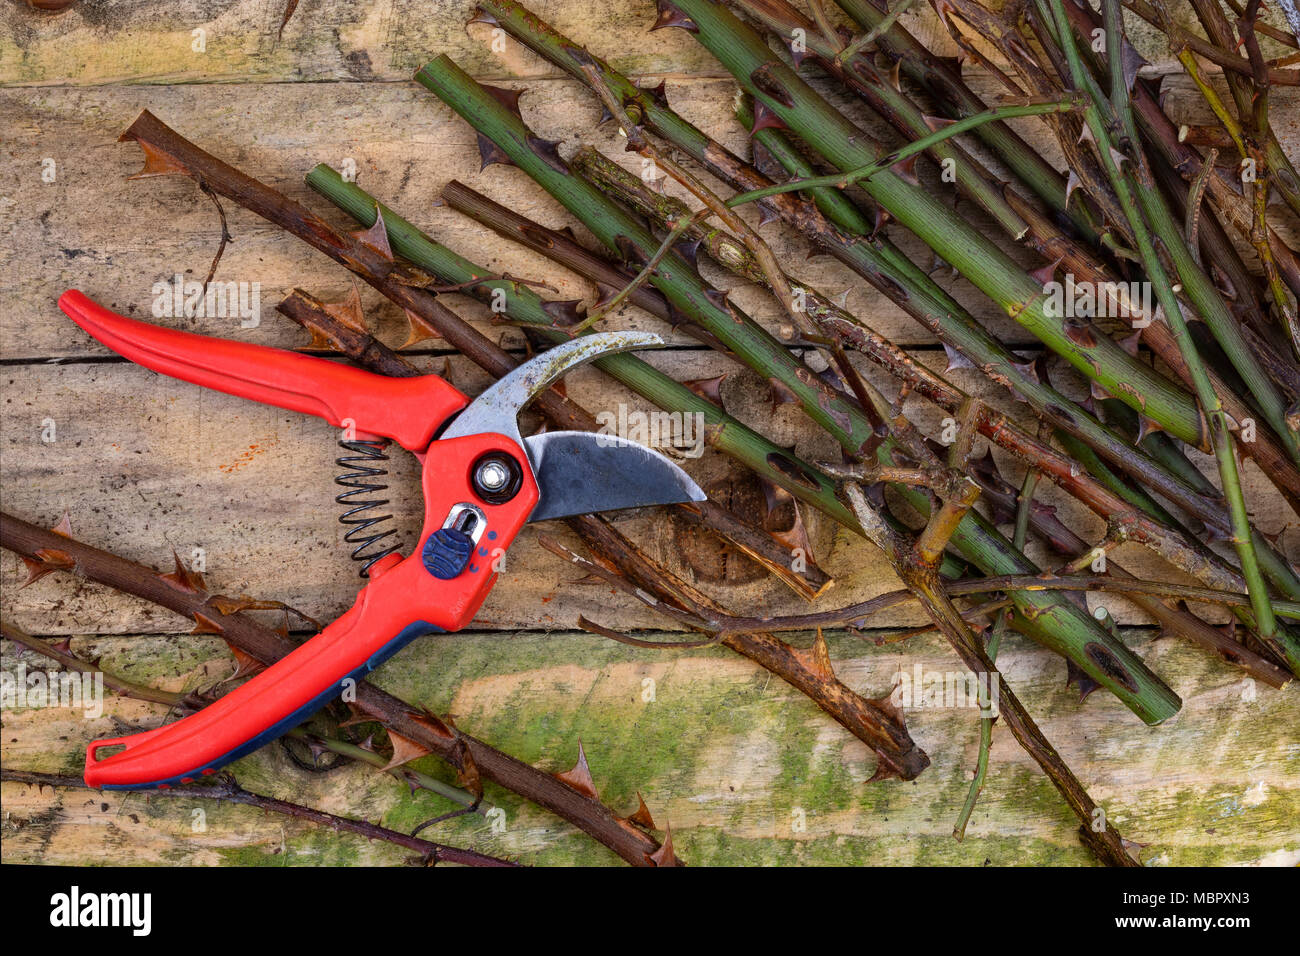 Gardening - pruning roses with secateurs - Stock Image